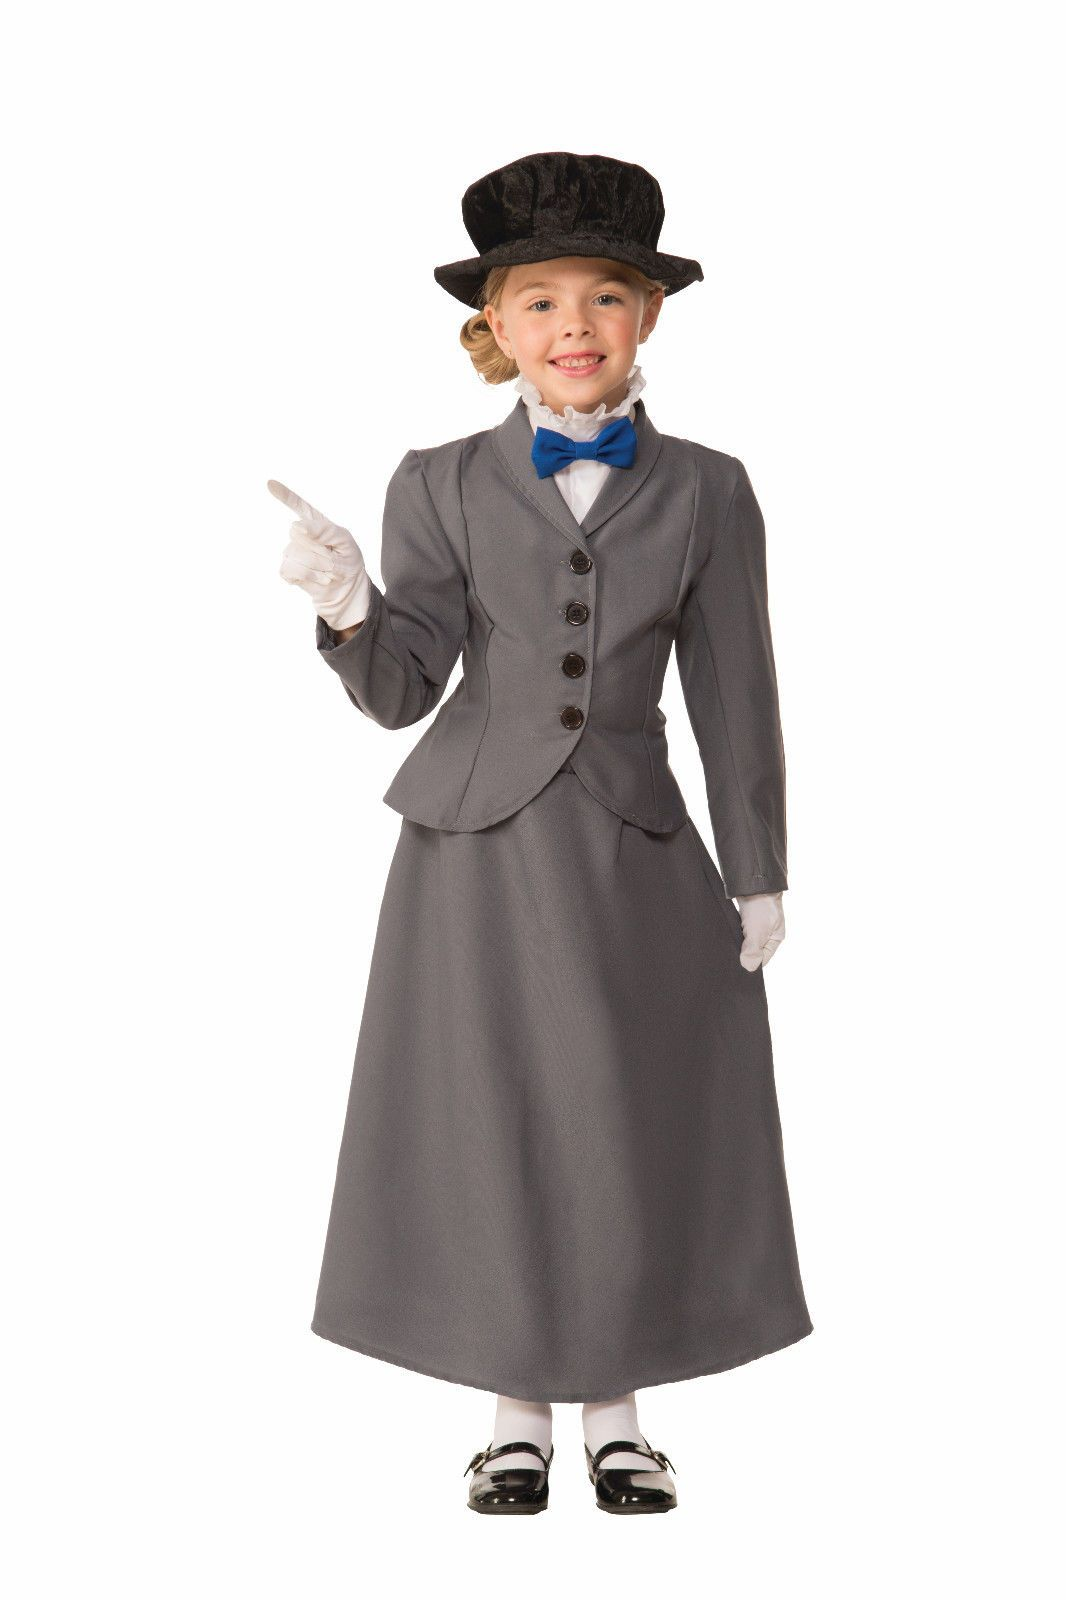 b01e18f884e37 Mary Poppins Girls Fancy Dress Disney Victorian Nanny Kids Childrens Costume  New Clothes, Shoes & Accessories ...